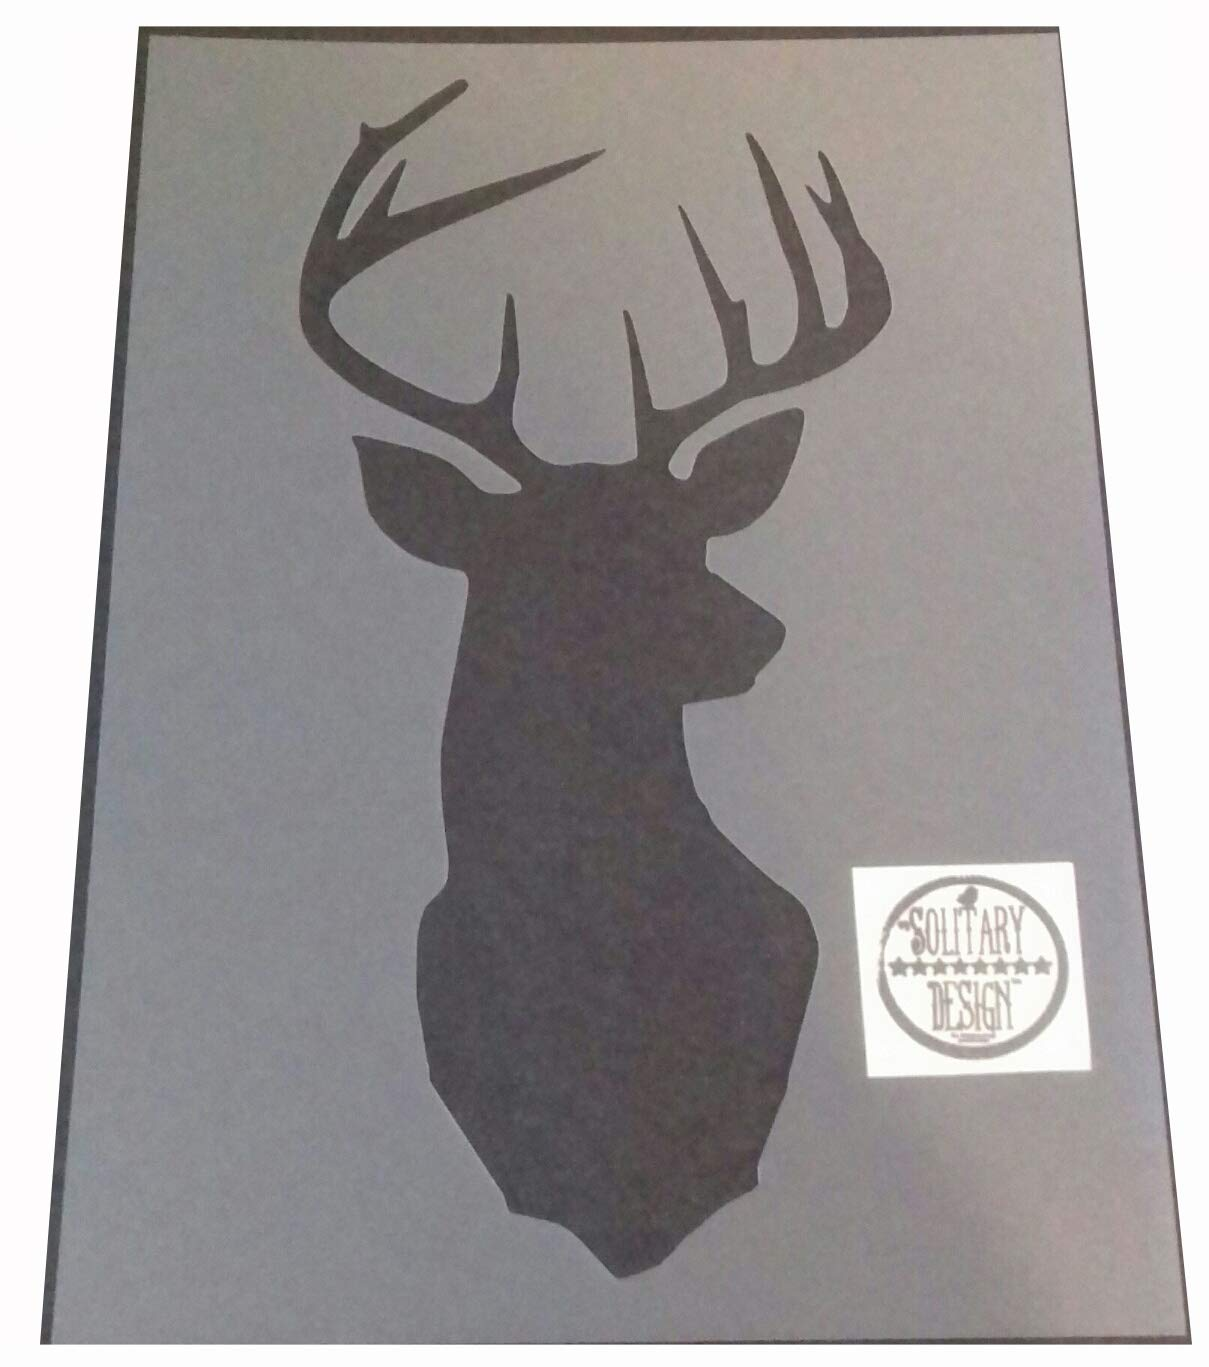 Solitarydesign Shabby Chic Stencil Stag Deer Head Rustic Mylar Vintage style A4 297x210mm wall art